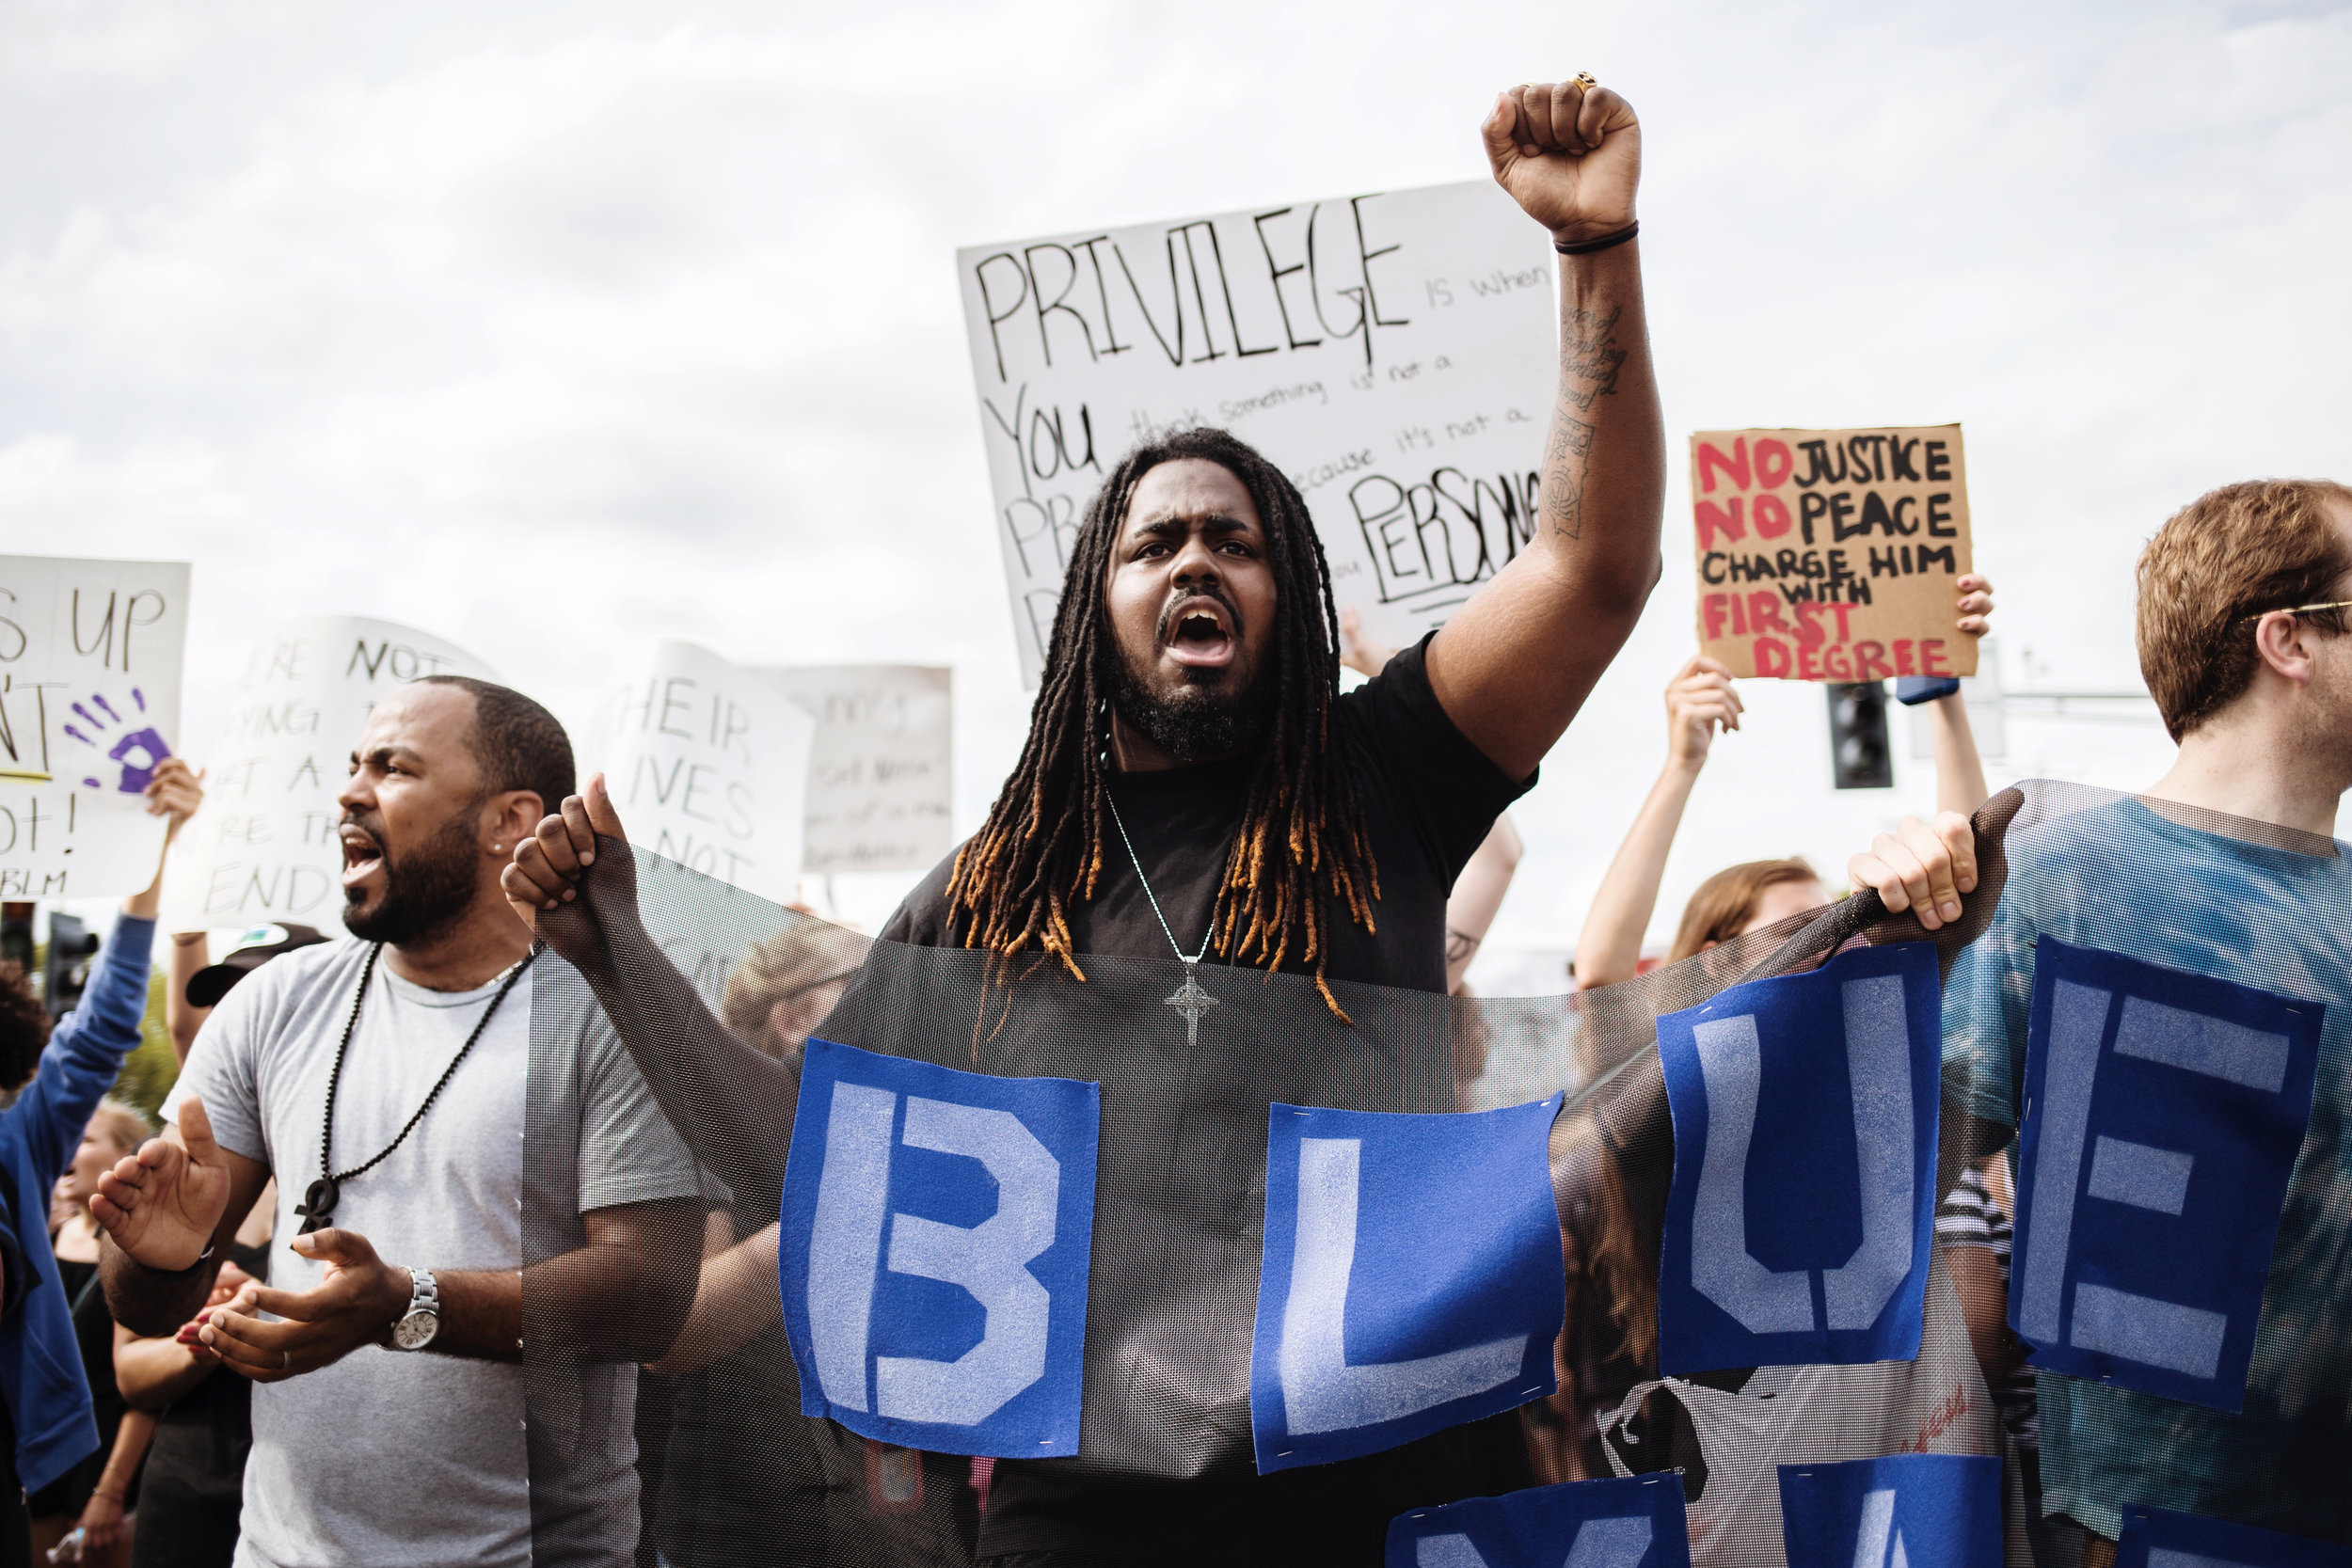 Aaron Allen of St. Paul cried out chants alongside other protesters during a march that followed a rally outside of the St. Anthony Police Department, where a crowd demanded justice for Philando Castile on Sunday, July 10, 2016.